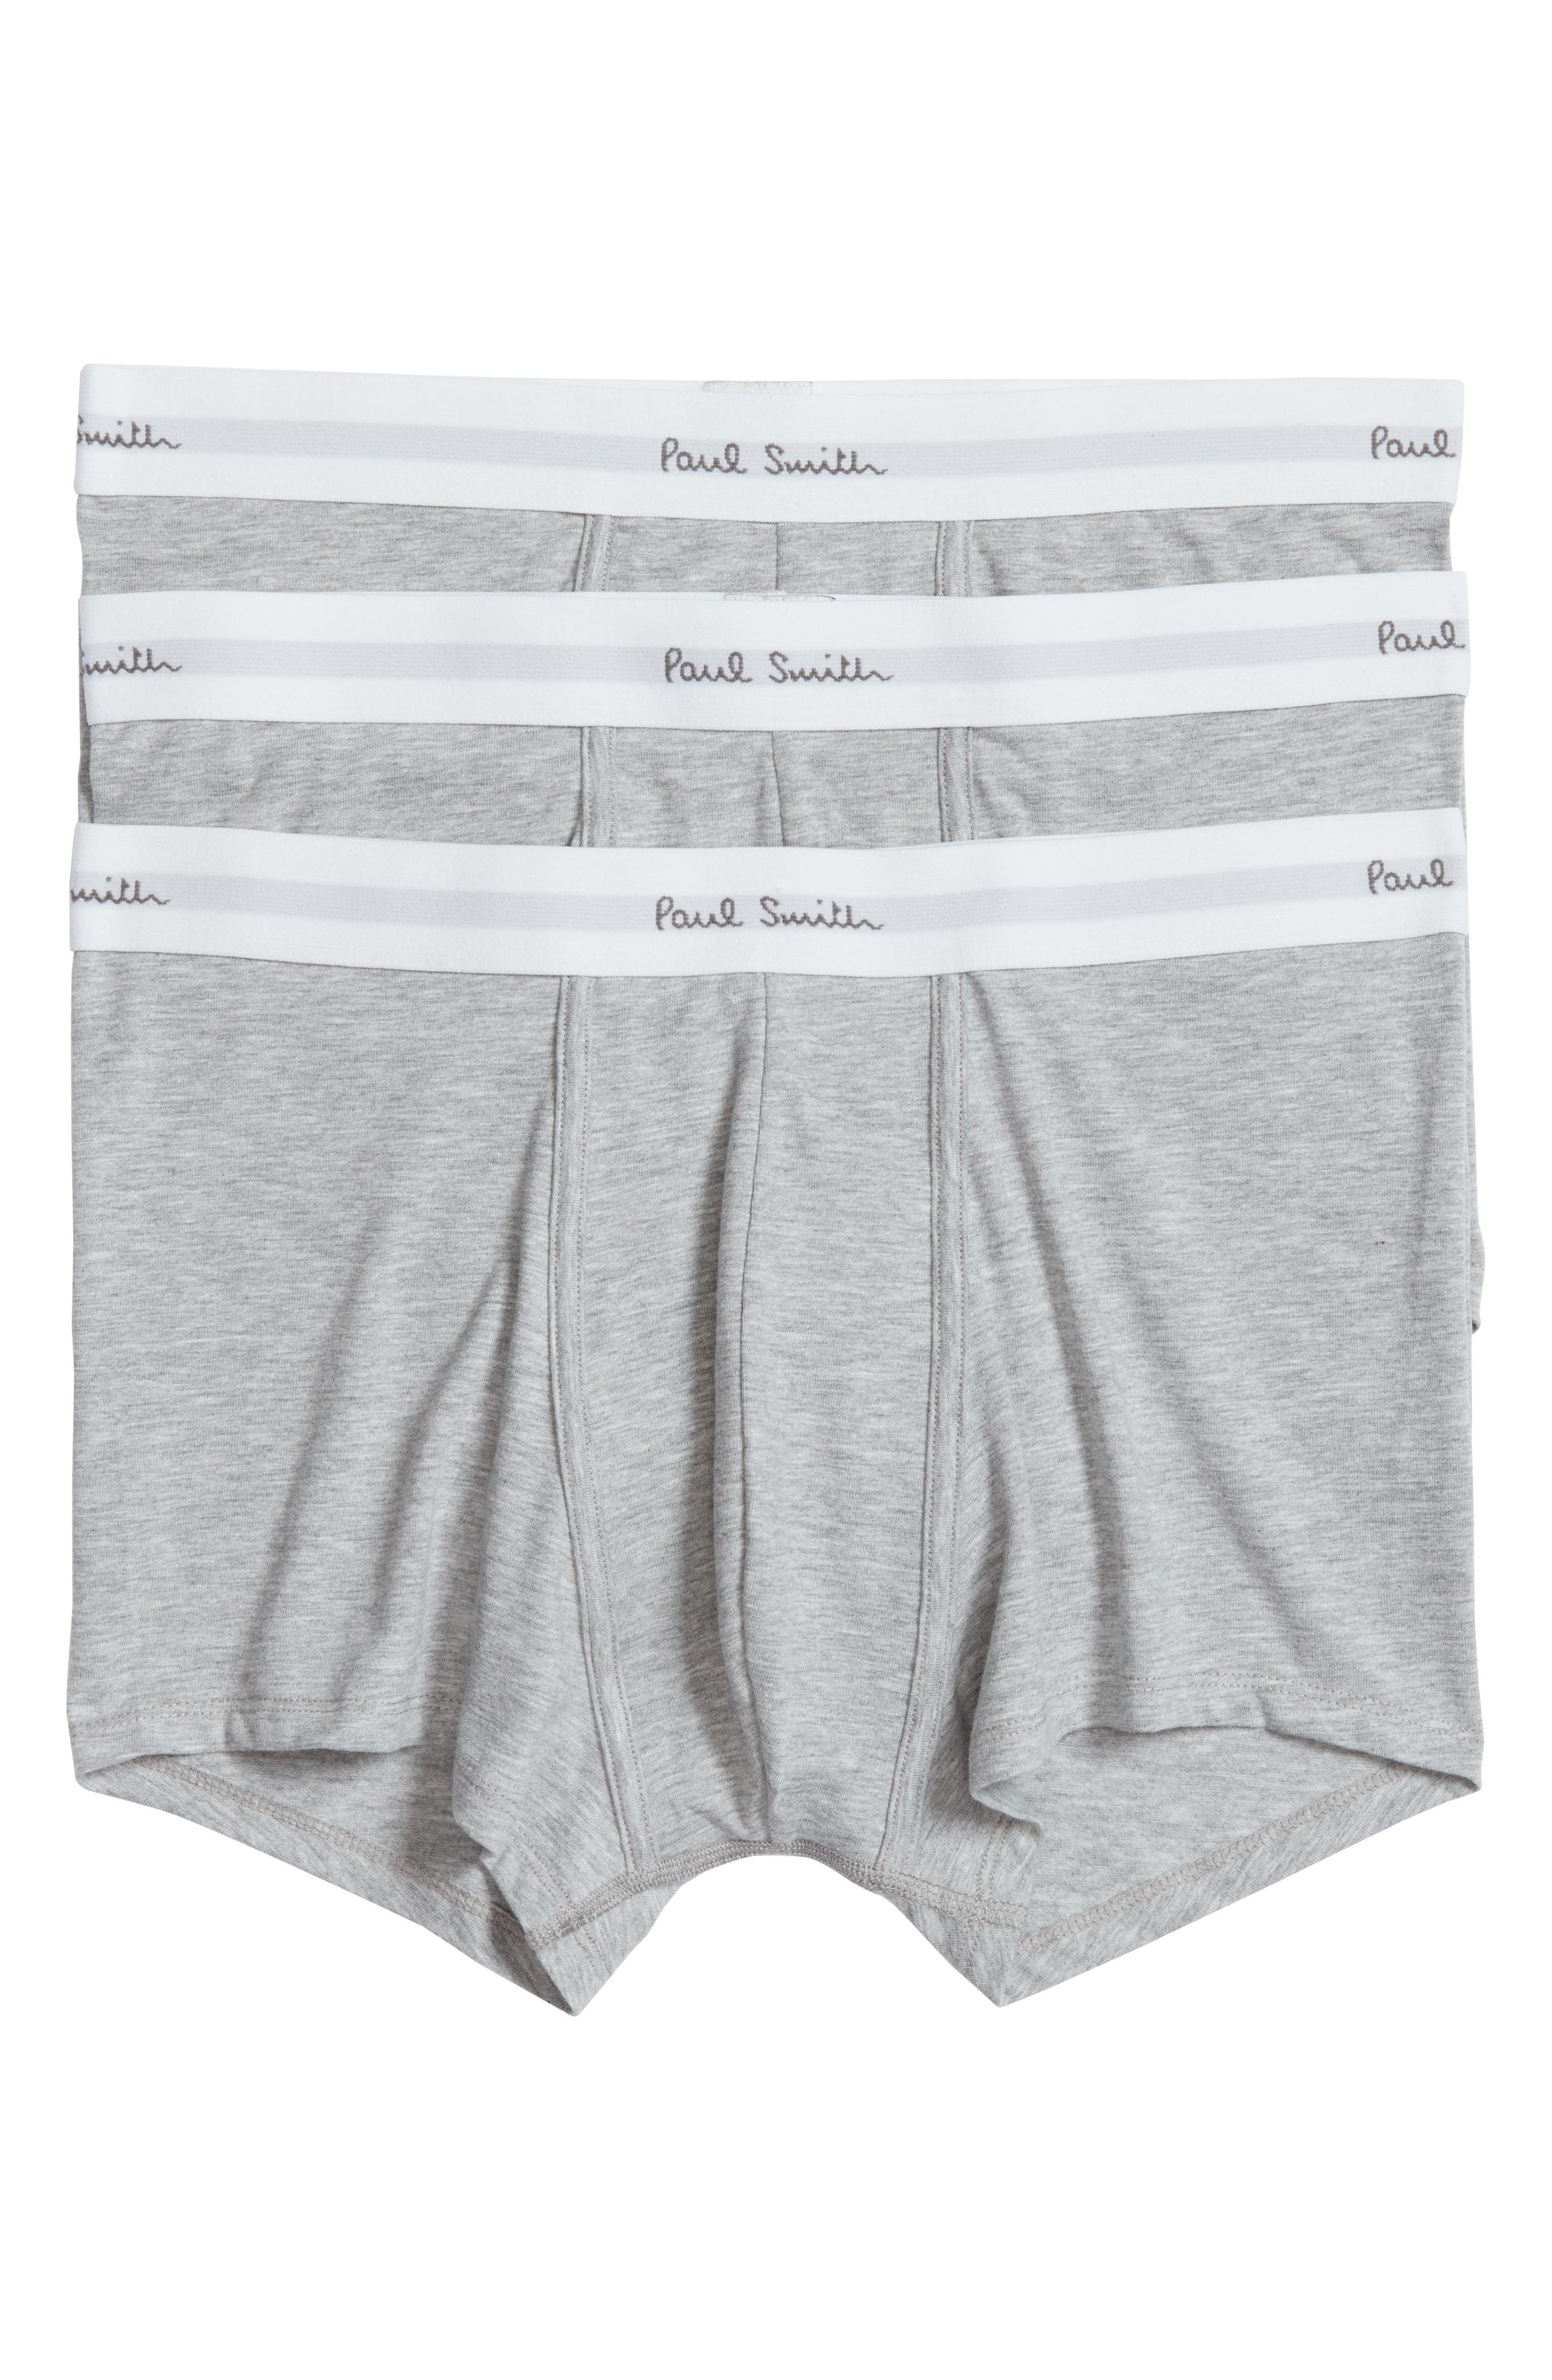 3-Pack Square Cut Trunks,                             Main thumbnail 1, color,                             Grey